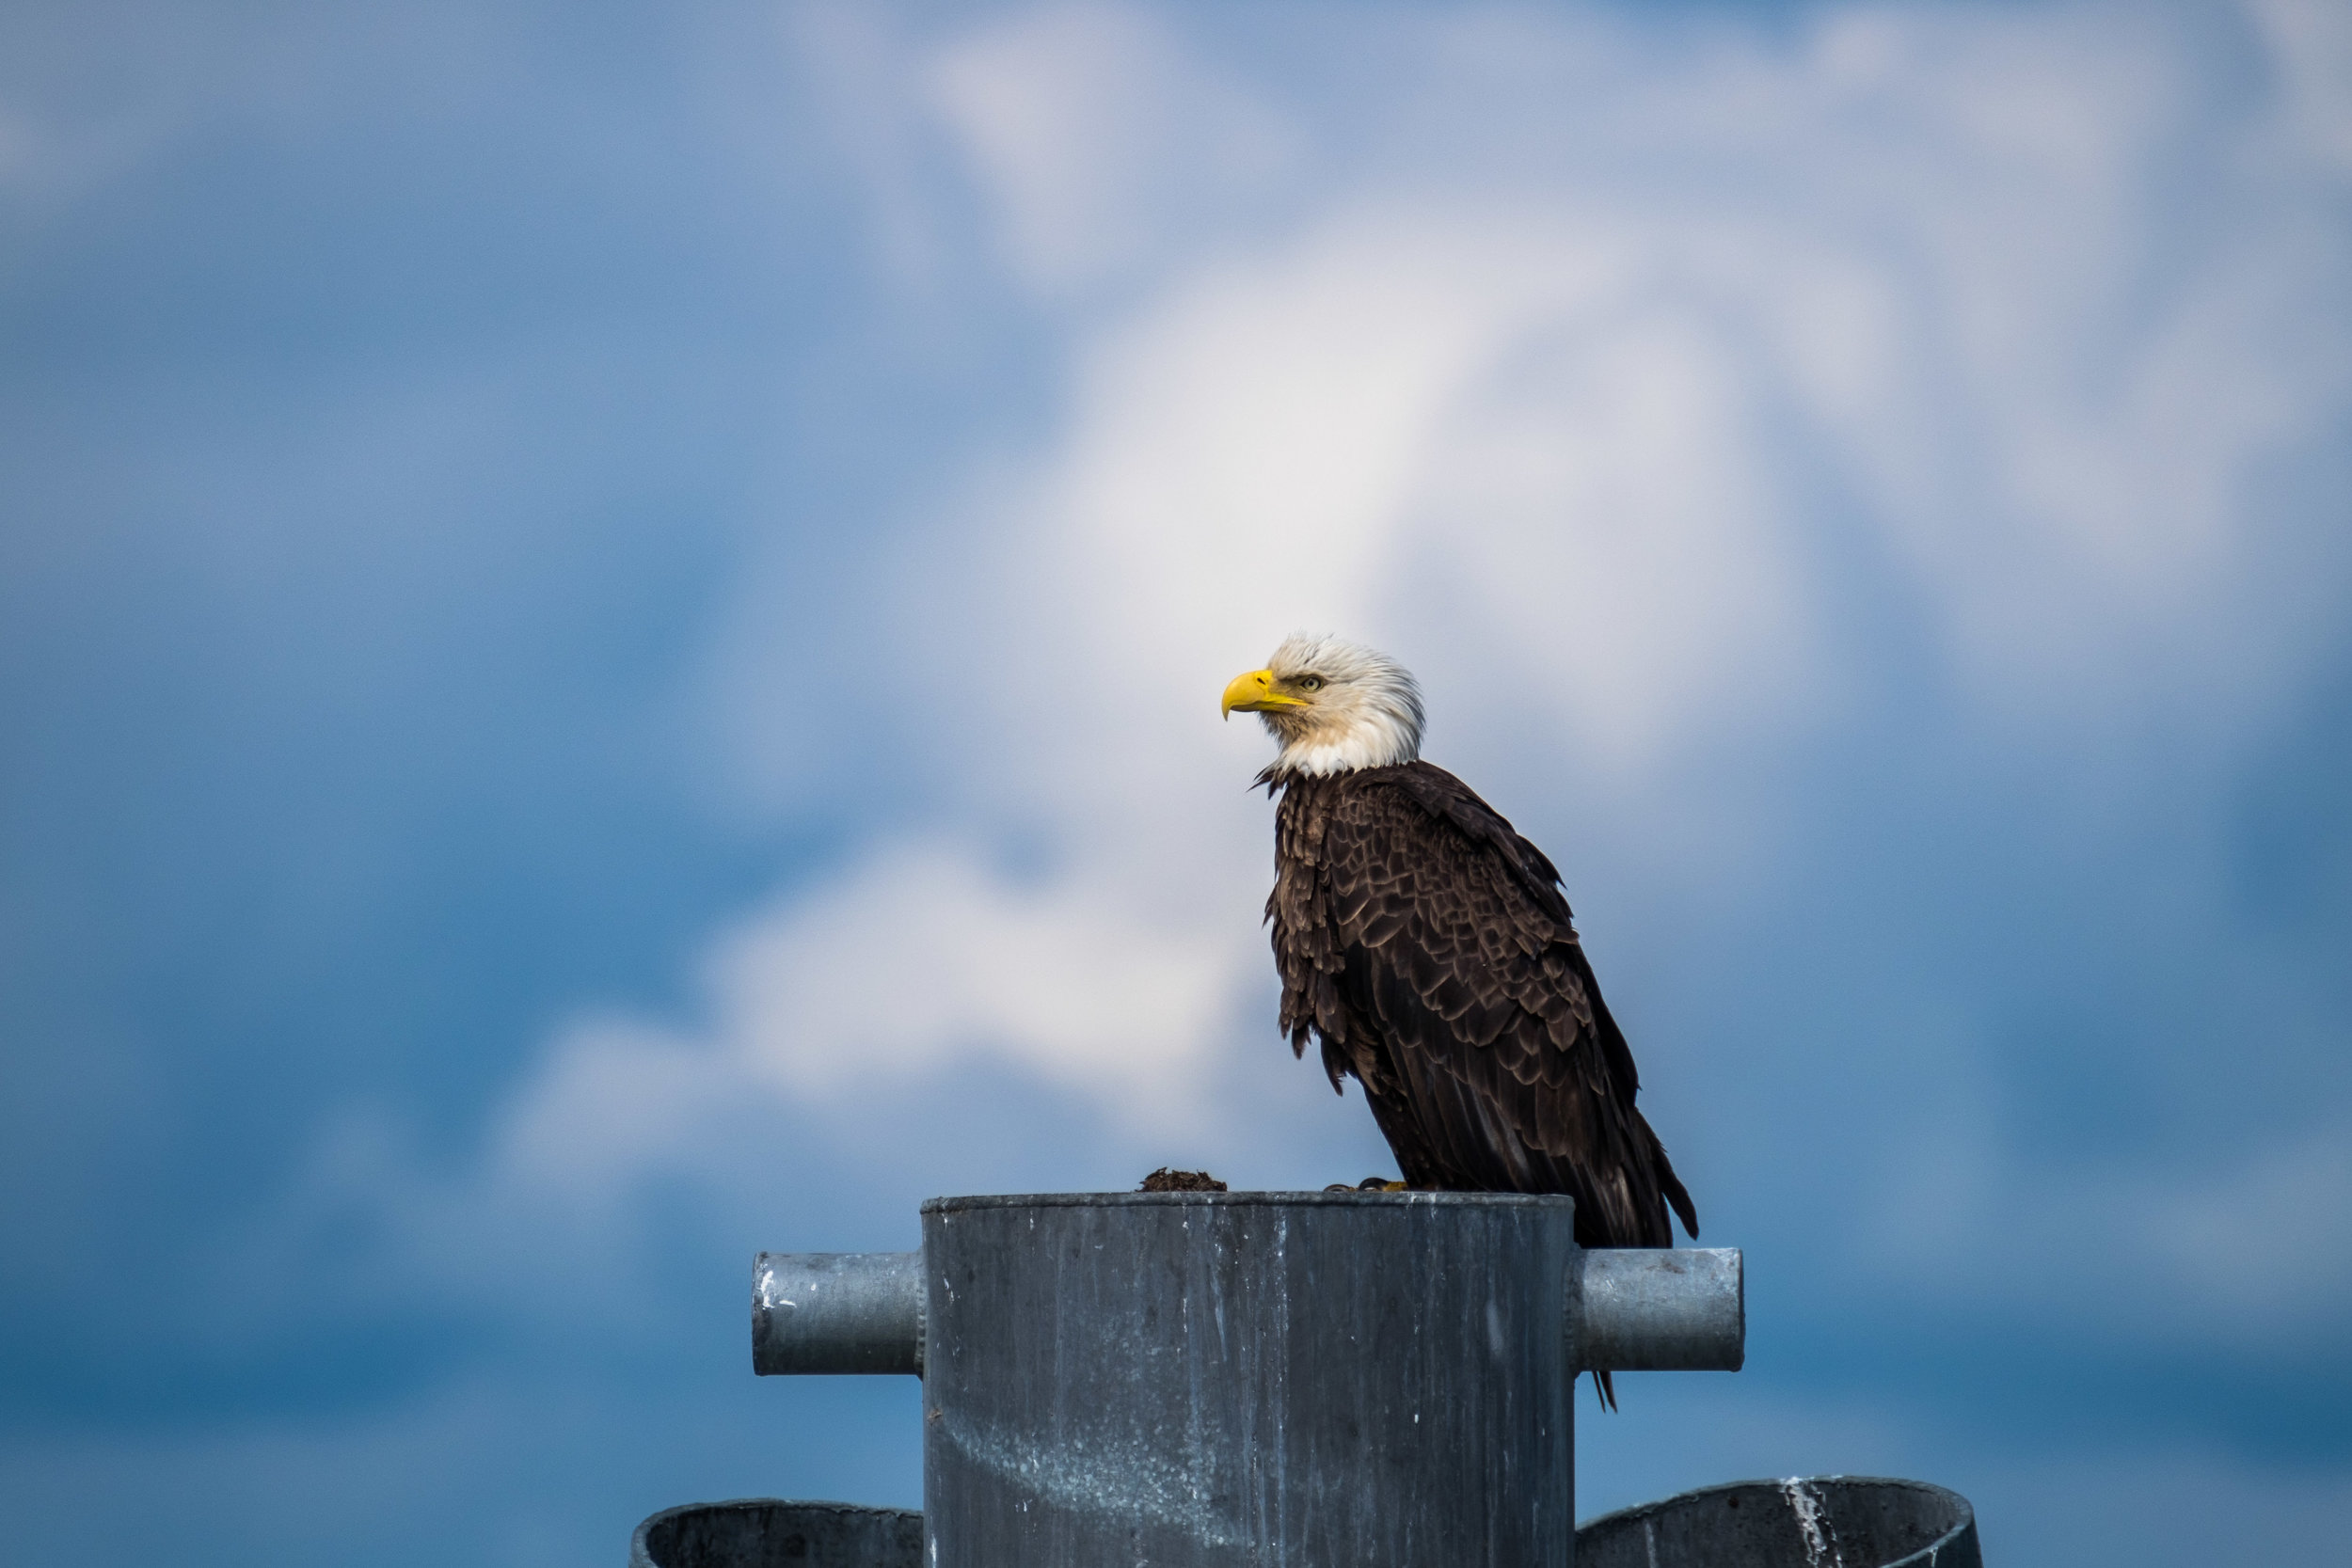 The very symbol of America, the Bald Eagle, in his protected home in Alaska.